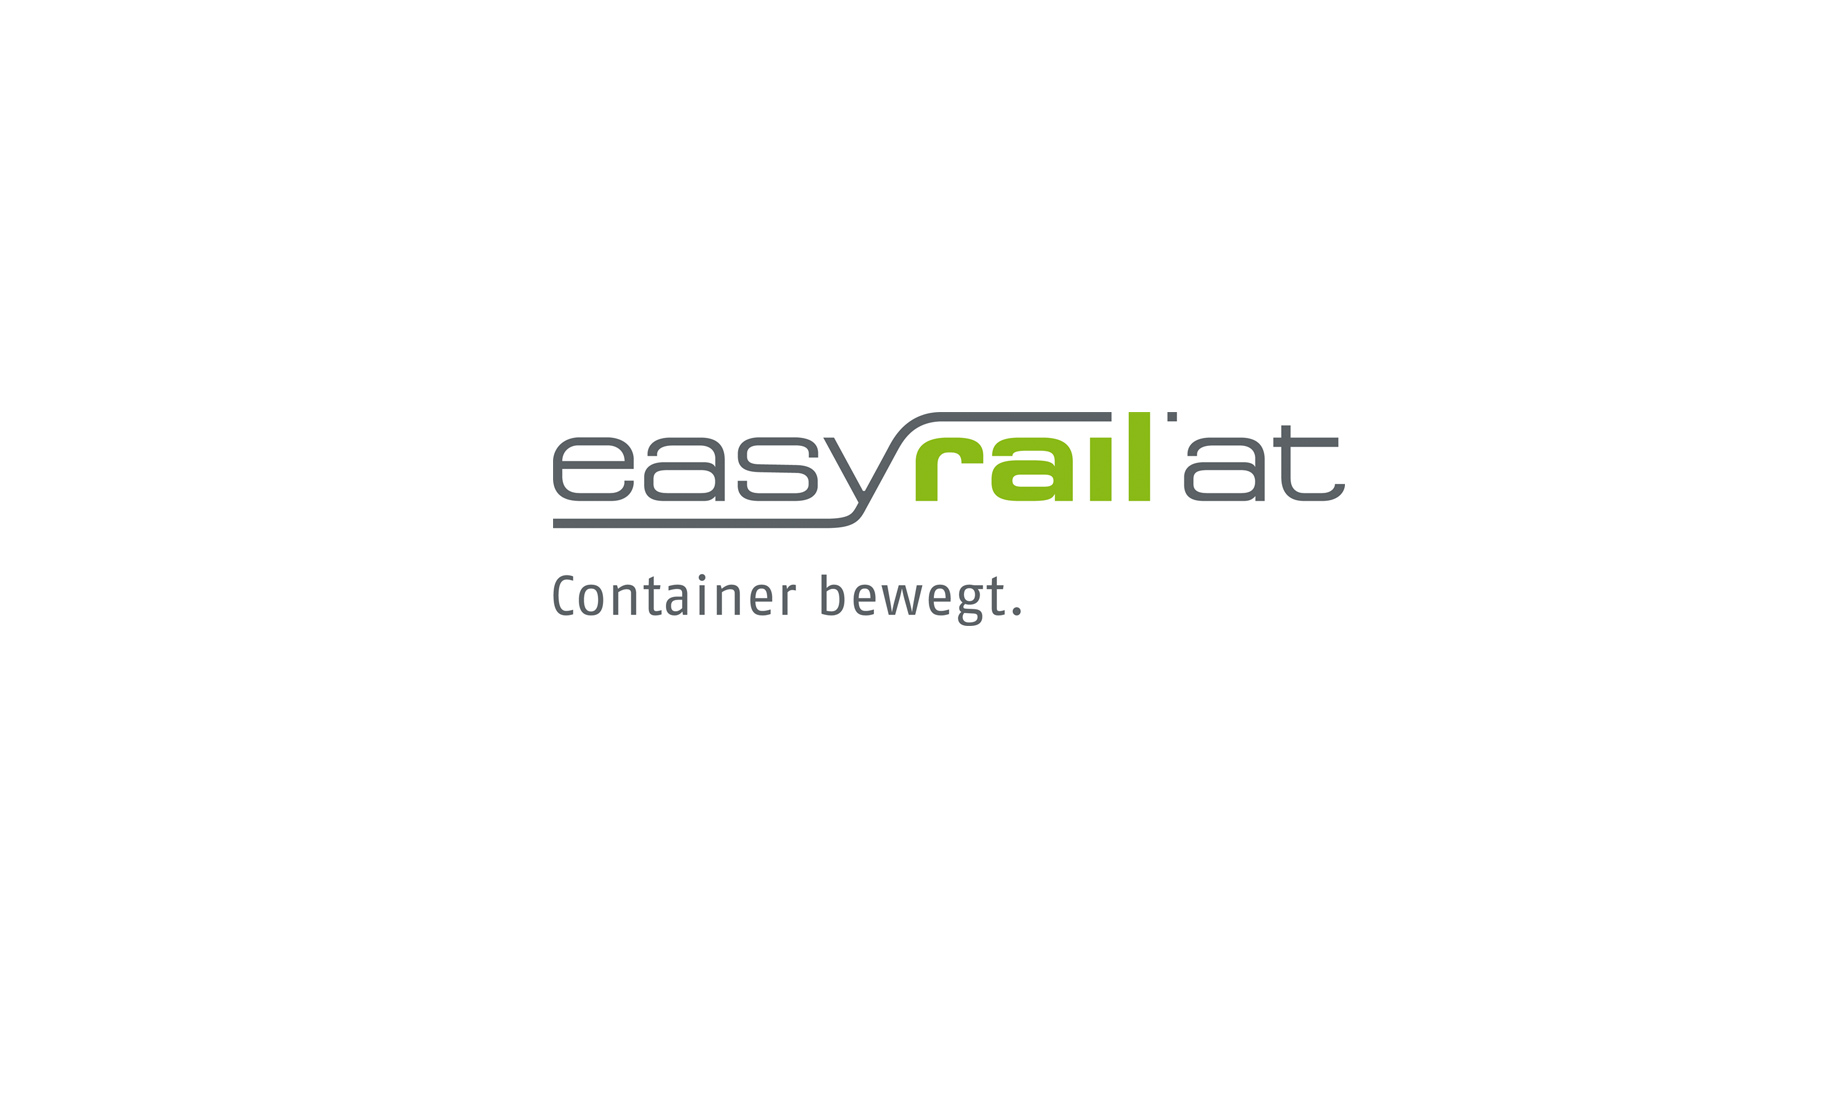 easyrail.at - Logo-Entwicklung inklusive neuem Corporate Design